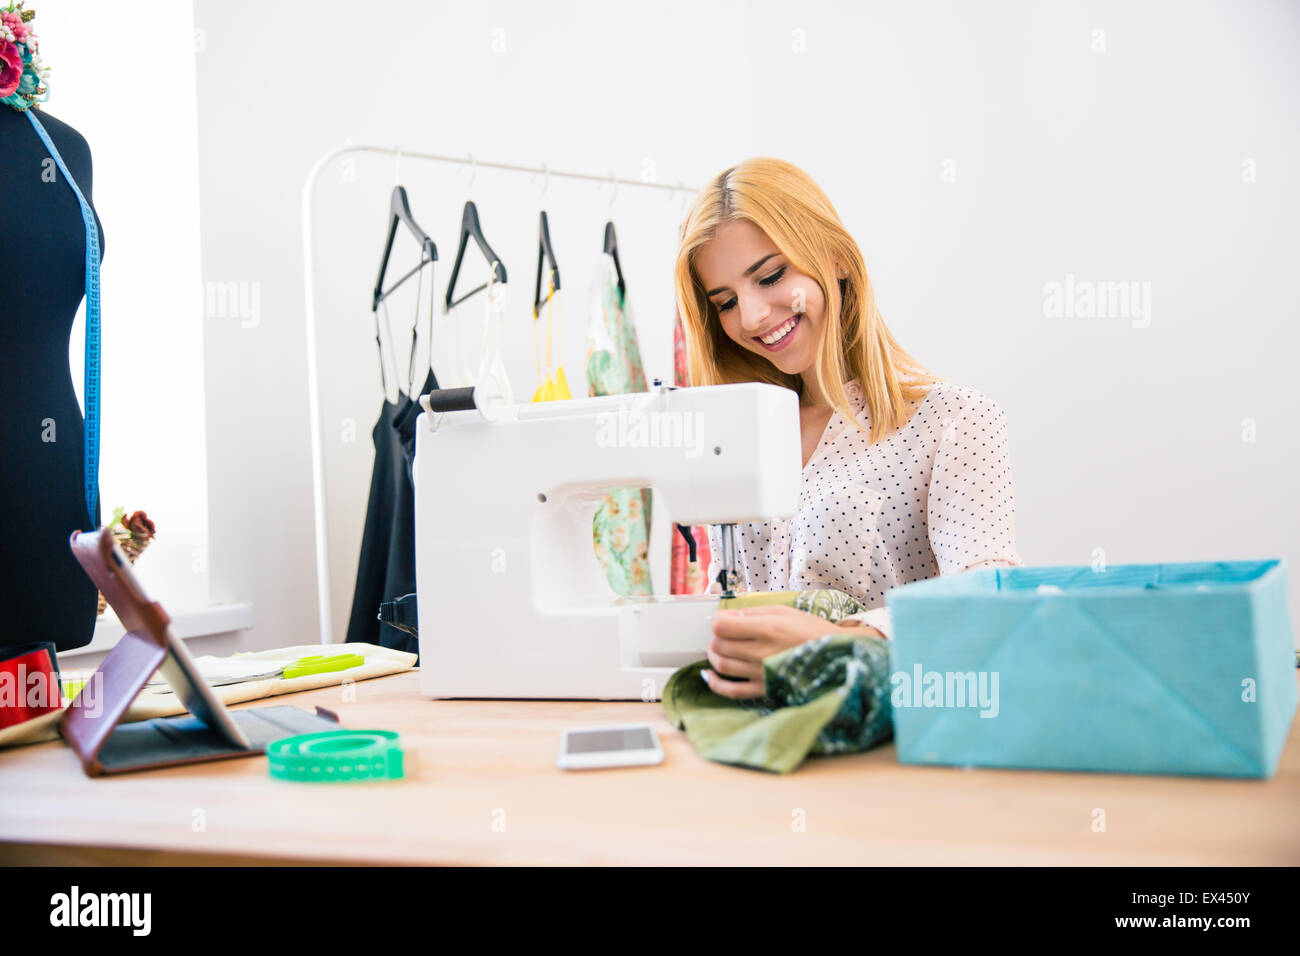 Happy female tailor using sewing machine in laundry - Stock Image